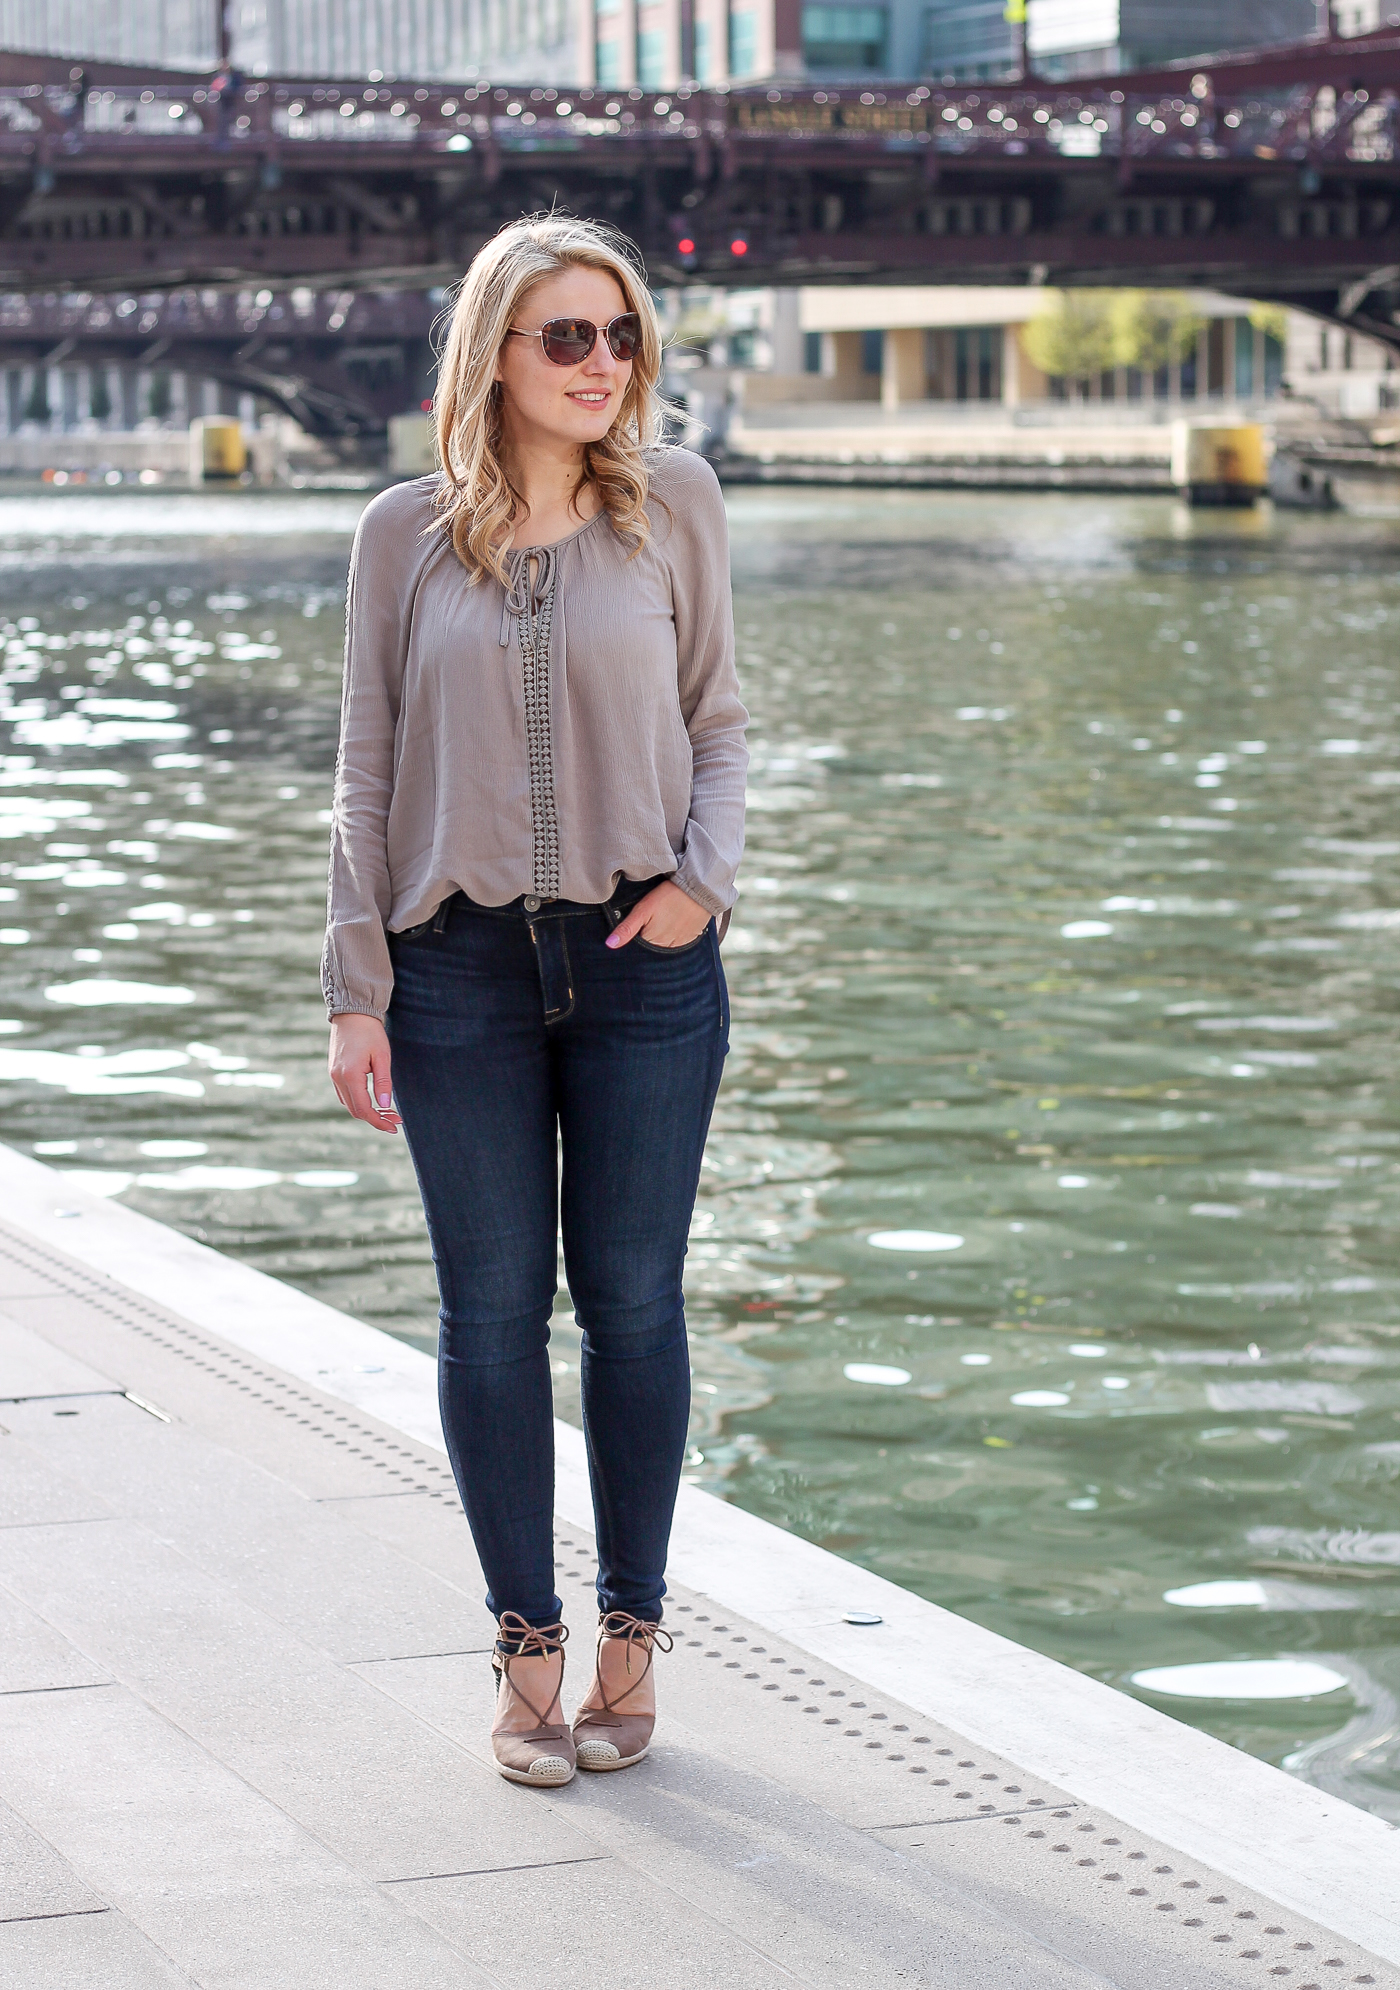 A tobi peseant blouse for a neutral spring day outfit